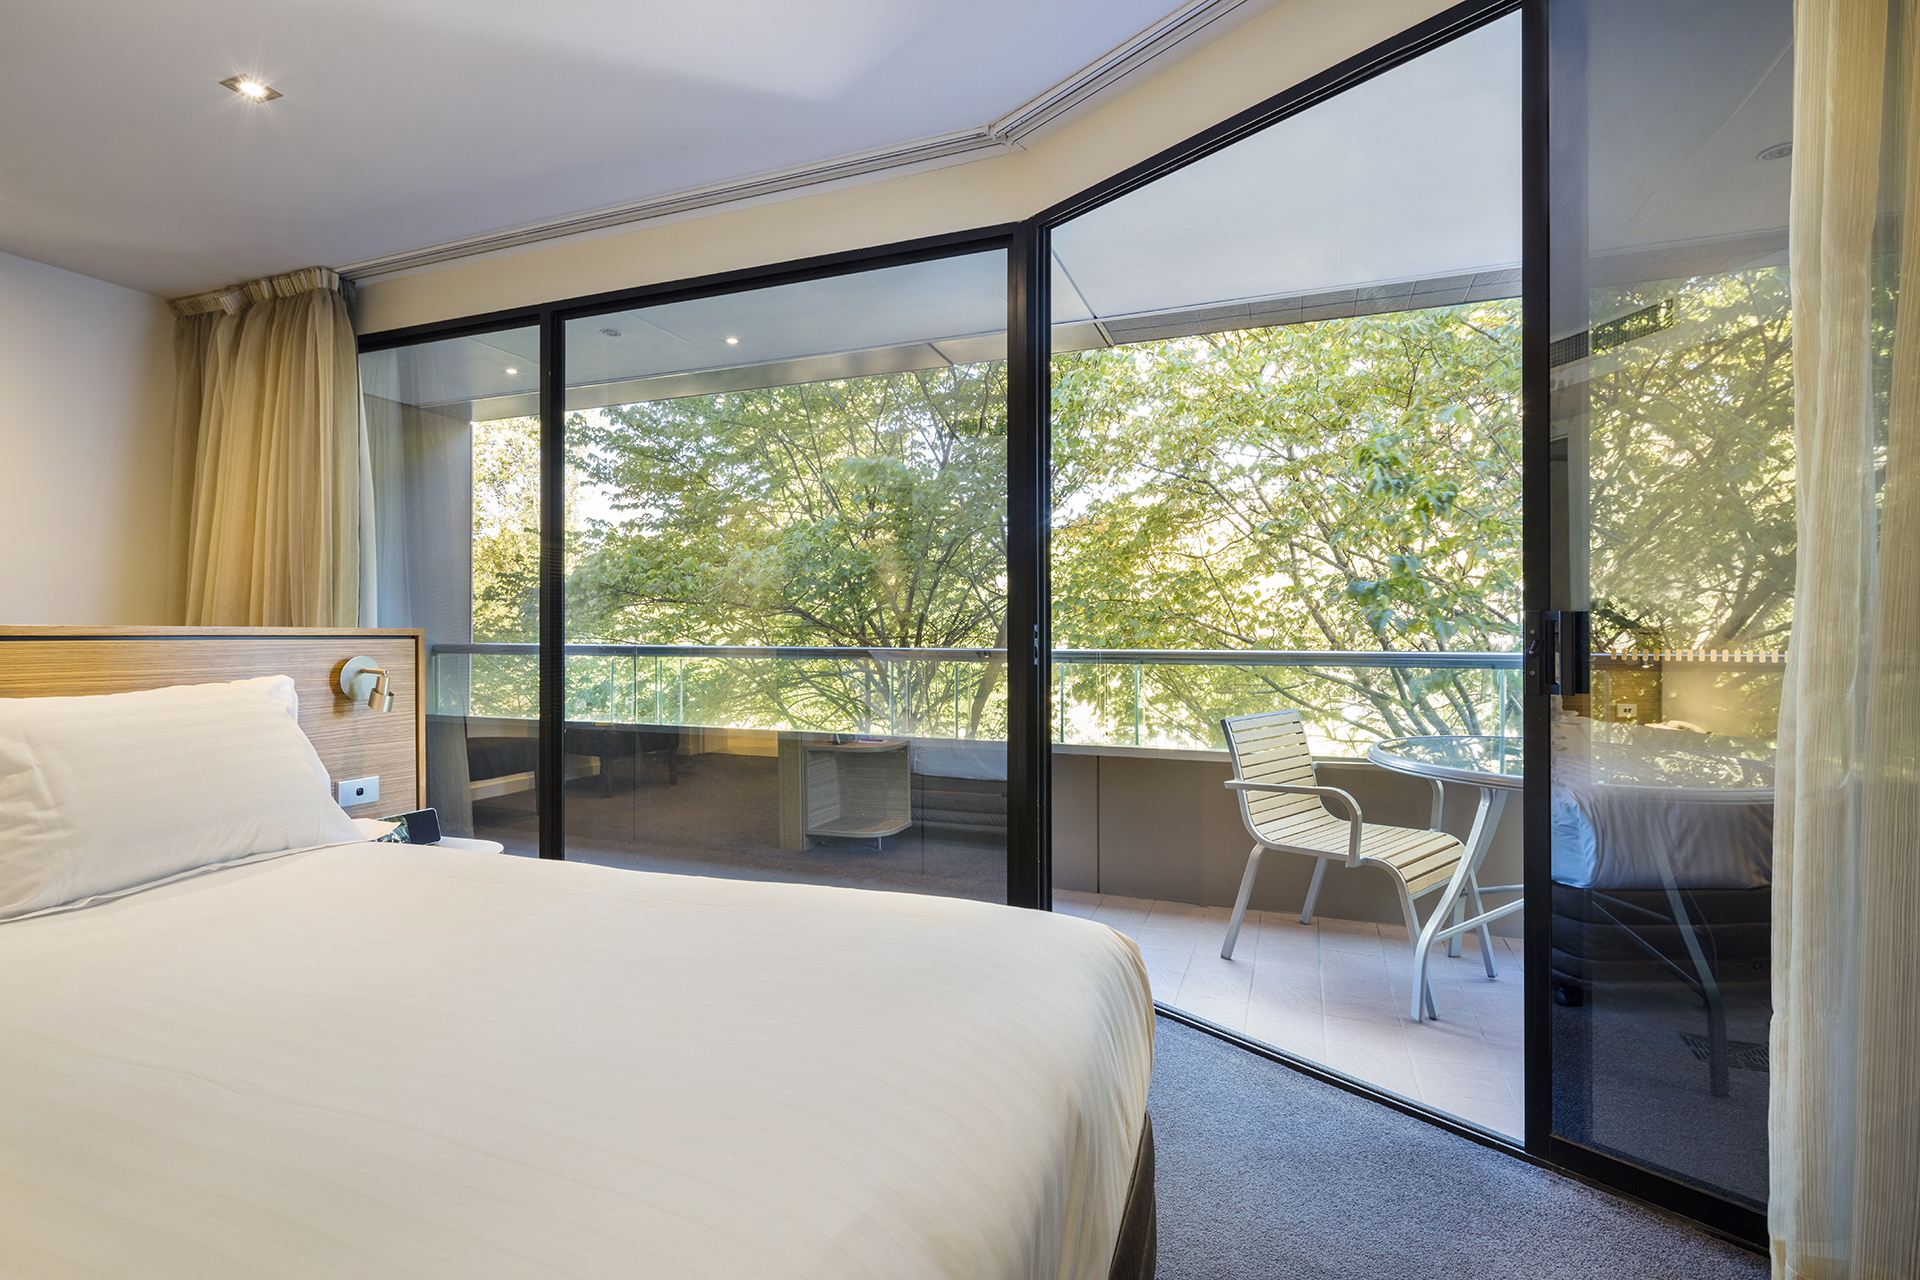 Deluxe Suite with balcony and park view